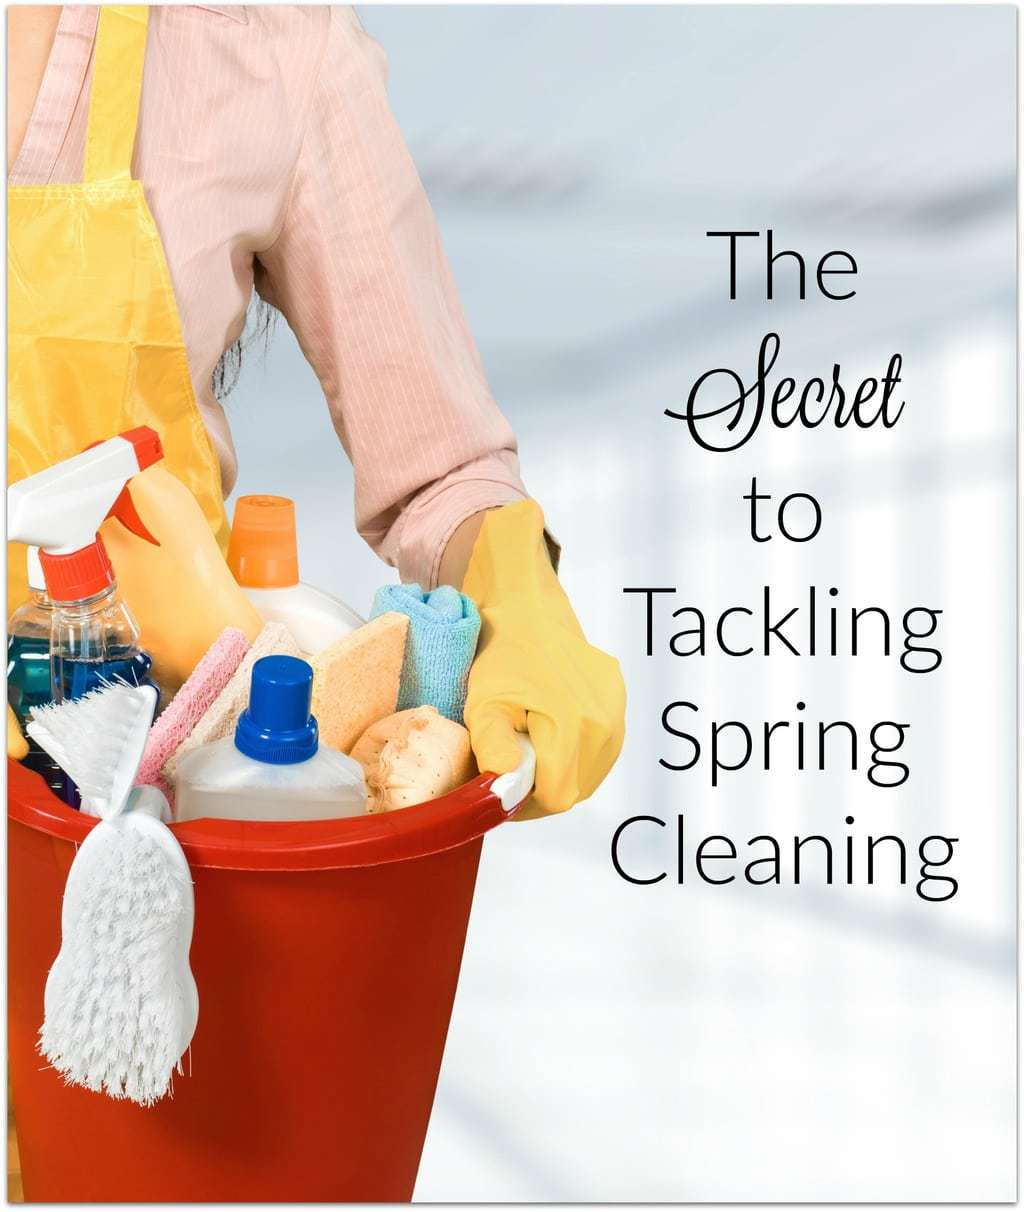 Spring cleaning is one of the most satisfying chores for me. Even though I live in Florida, it does get chilly here, and right around this time of year we can start opening the windows and let that fresh spring air in. The problem is, we're busy, and though I love the feeling after it's done, getting to it is the issue. I put it off and put it off until I can't put it off any longer! Can you relate?